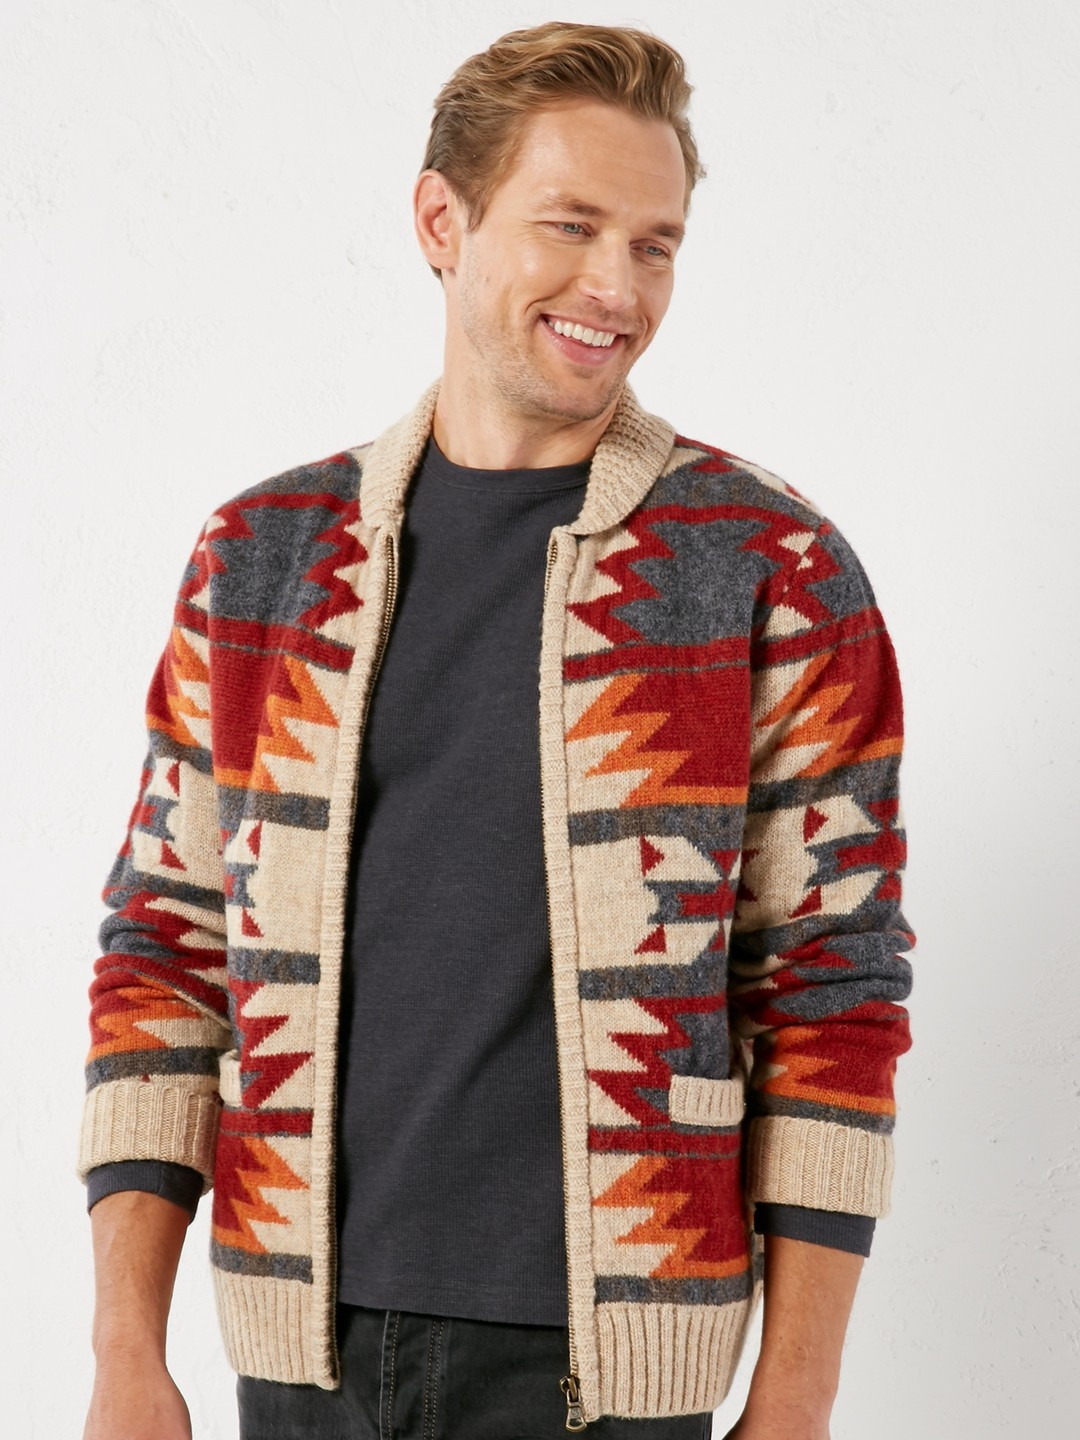 Unique Dutton Zip Pattern Knit Cardigans Mens Patterned Cardigan Of Charming 50 Models Mens Patterned Cardigan